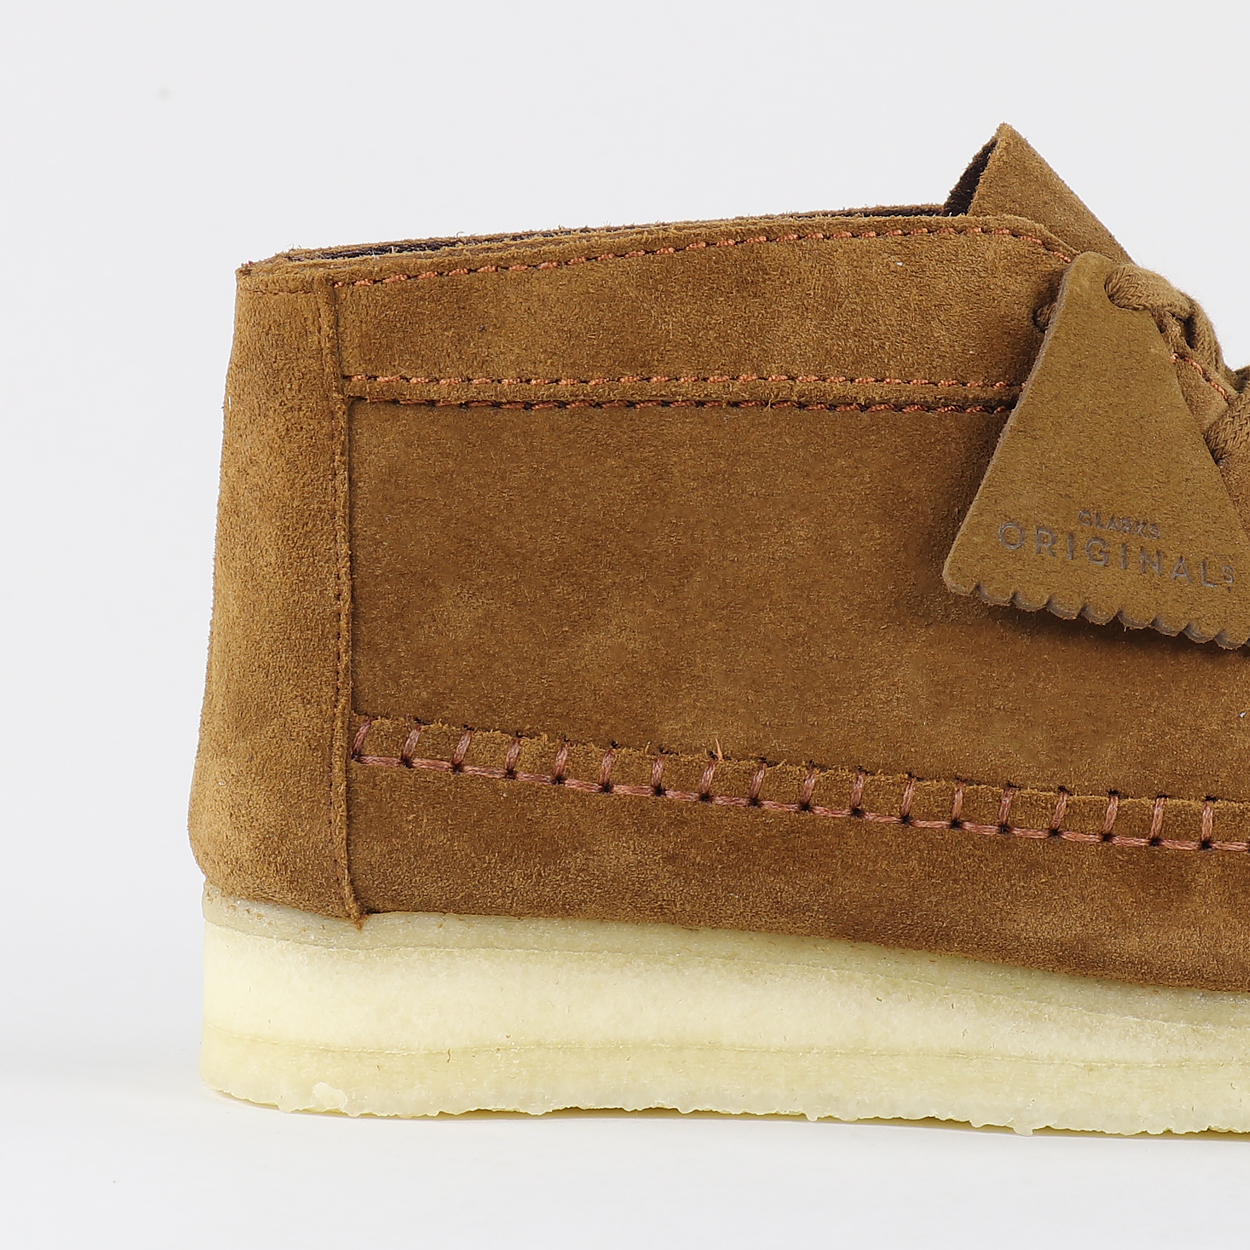 731bc0c0332 The Clarks Originals Weaver gets a slight extension to give us the Weaver  Boot. High quality suede is used for the upper, which sits on Clarks'  signature ...